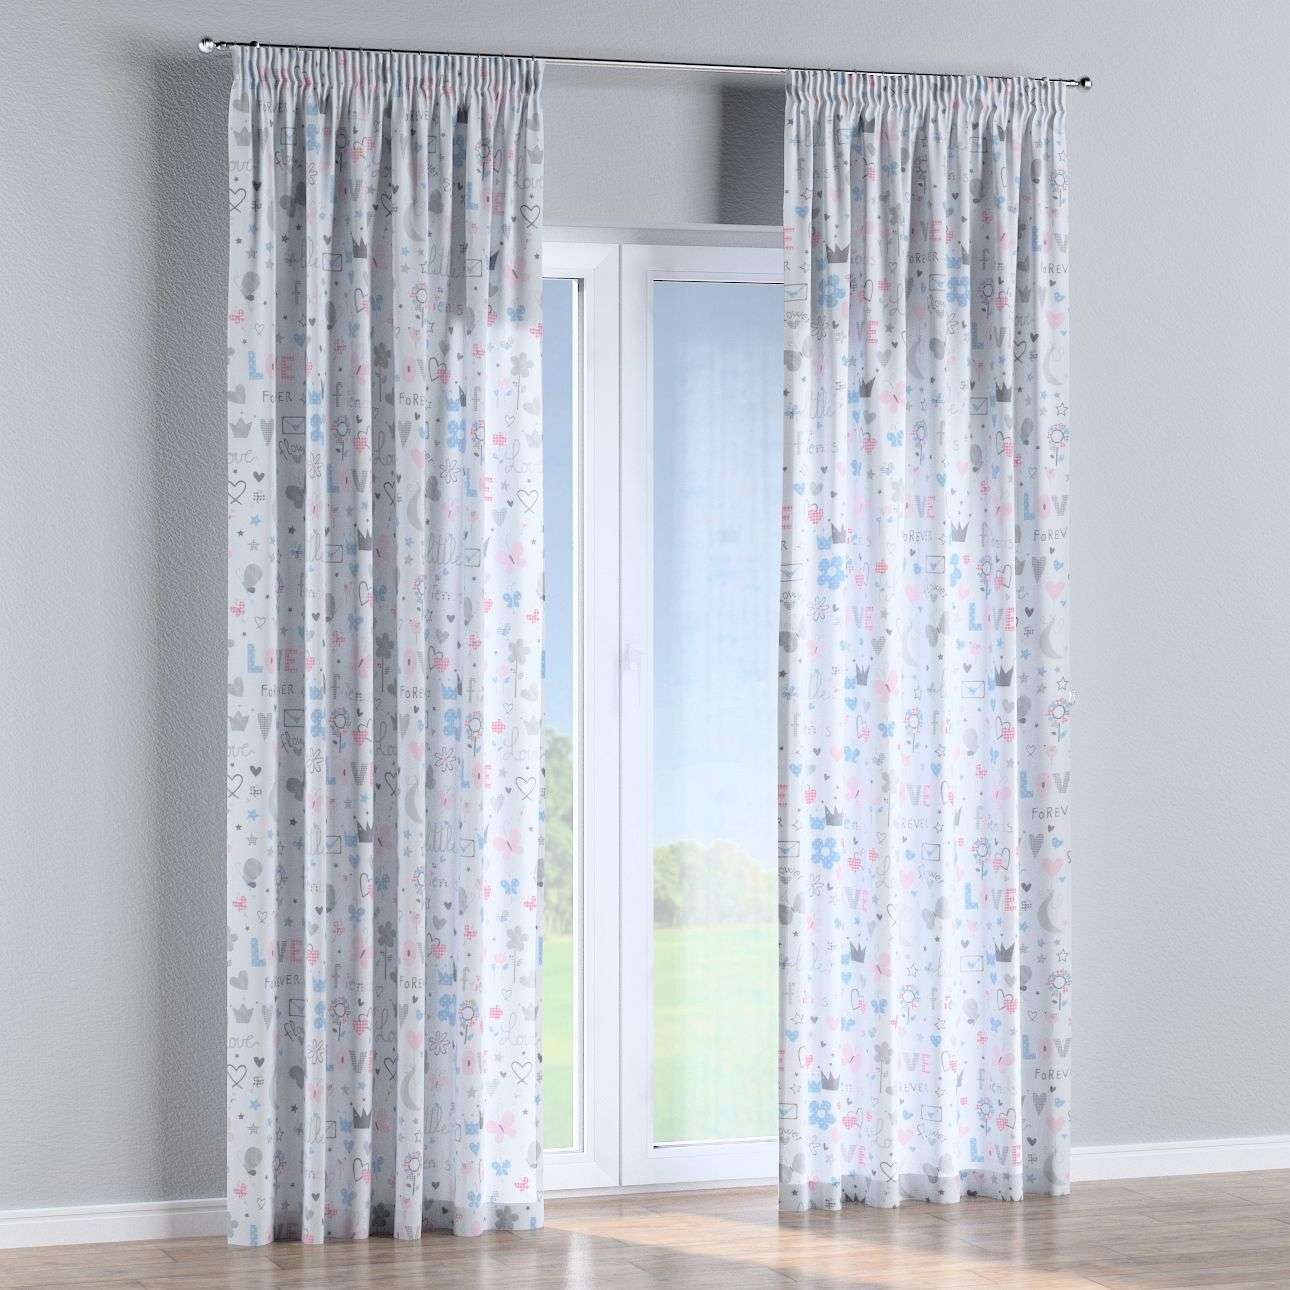 Pencil pleat curtains in collection Little World, fabric: 141-27